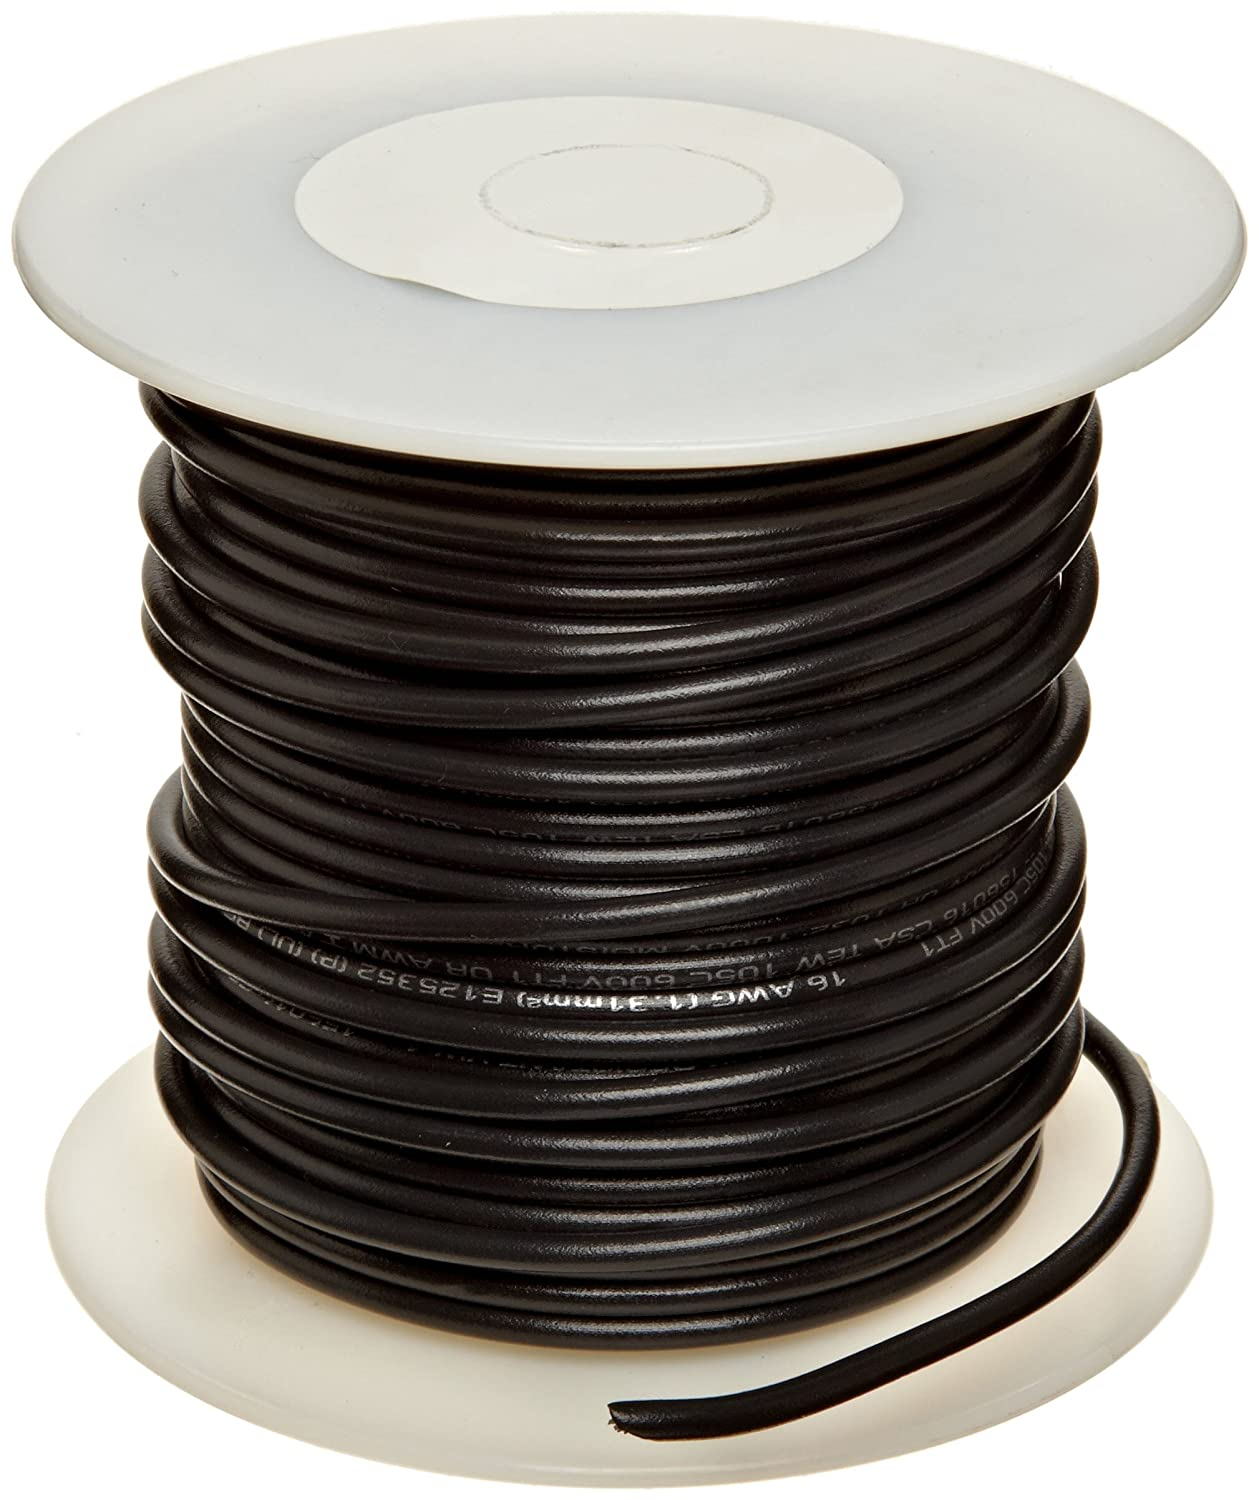 Pack of 1 Bright 18 AWG 100 Length Black UL1015 Commercial Copper Wire 0.0403 Diameter